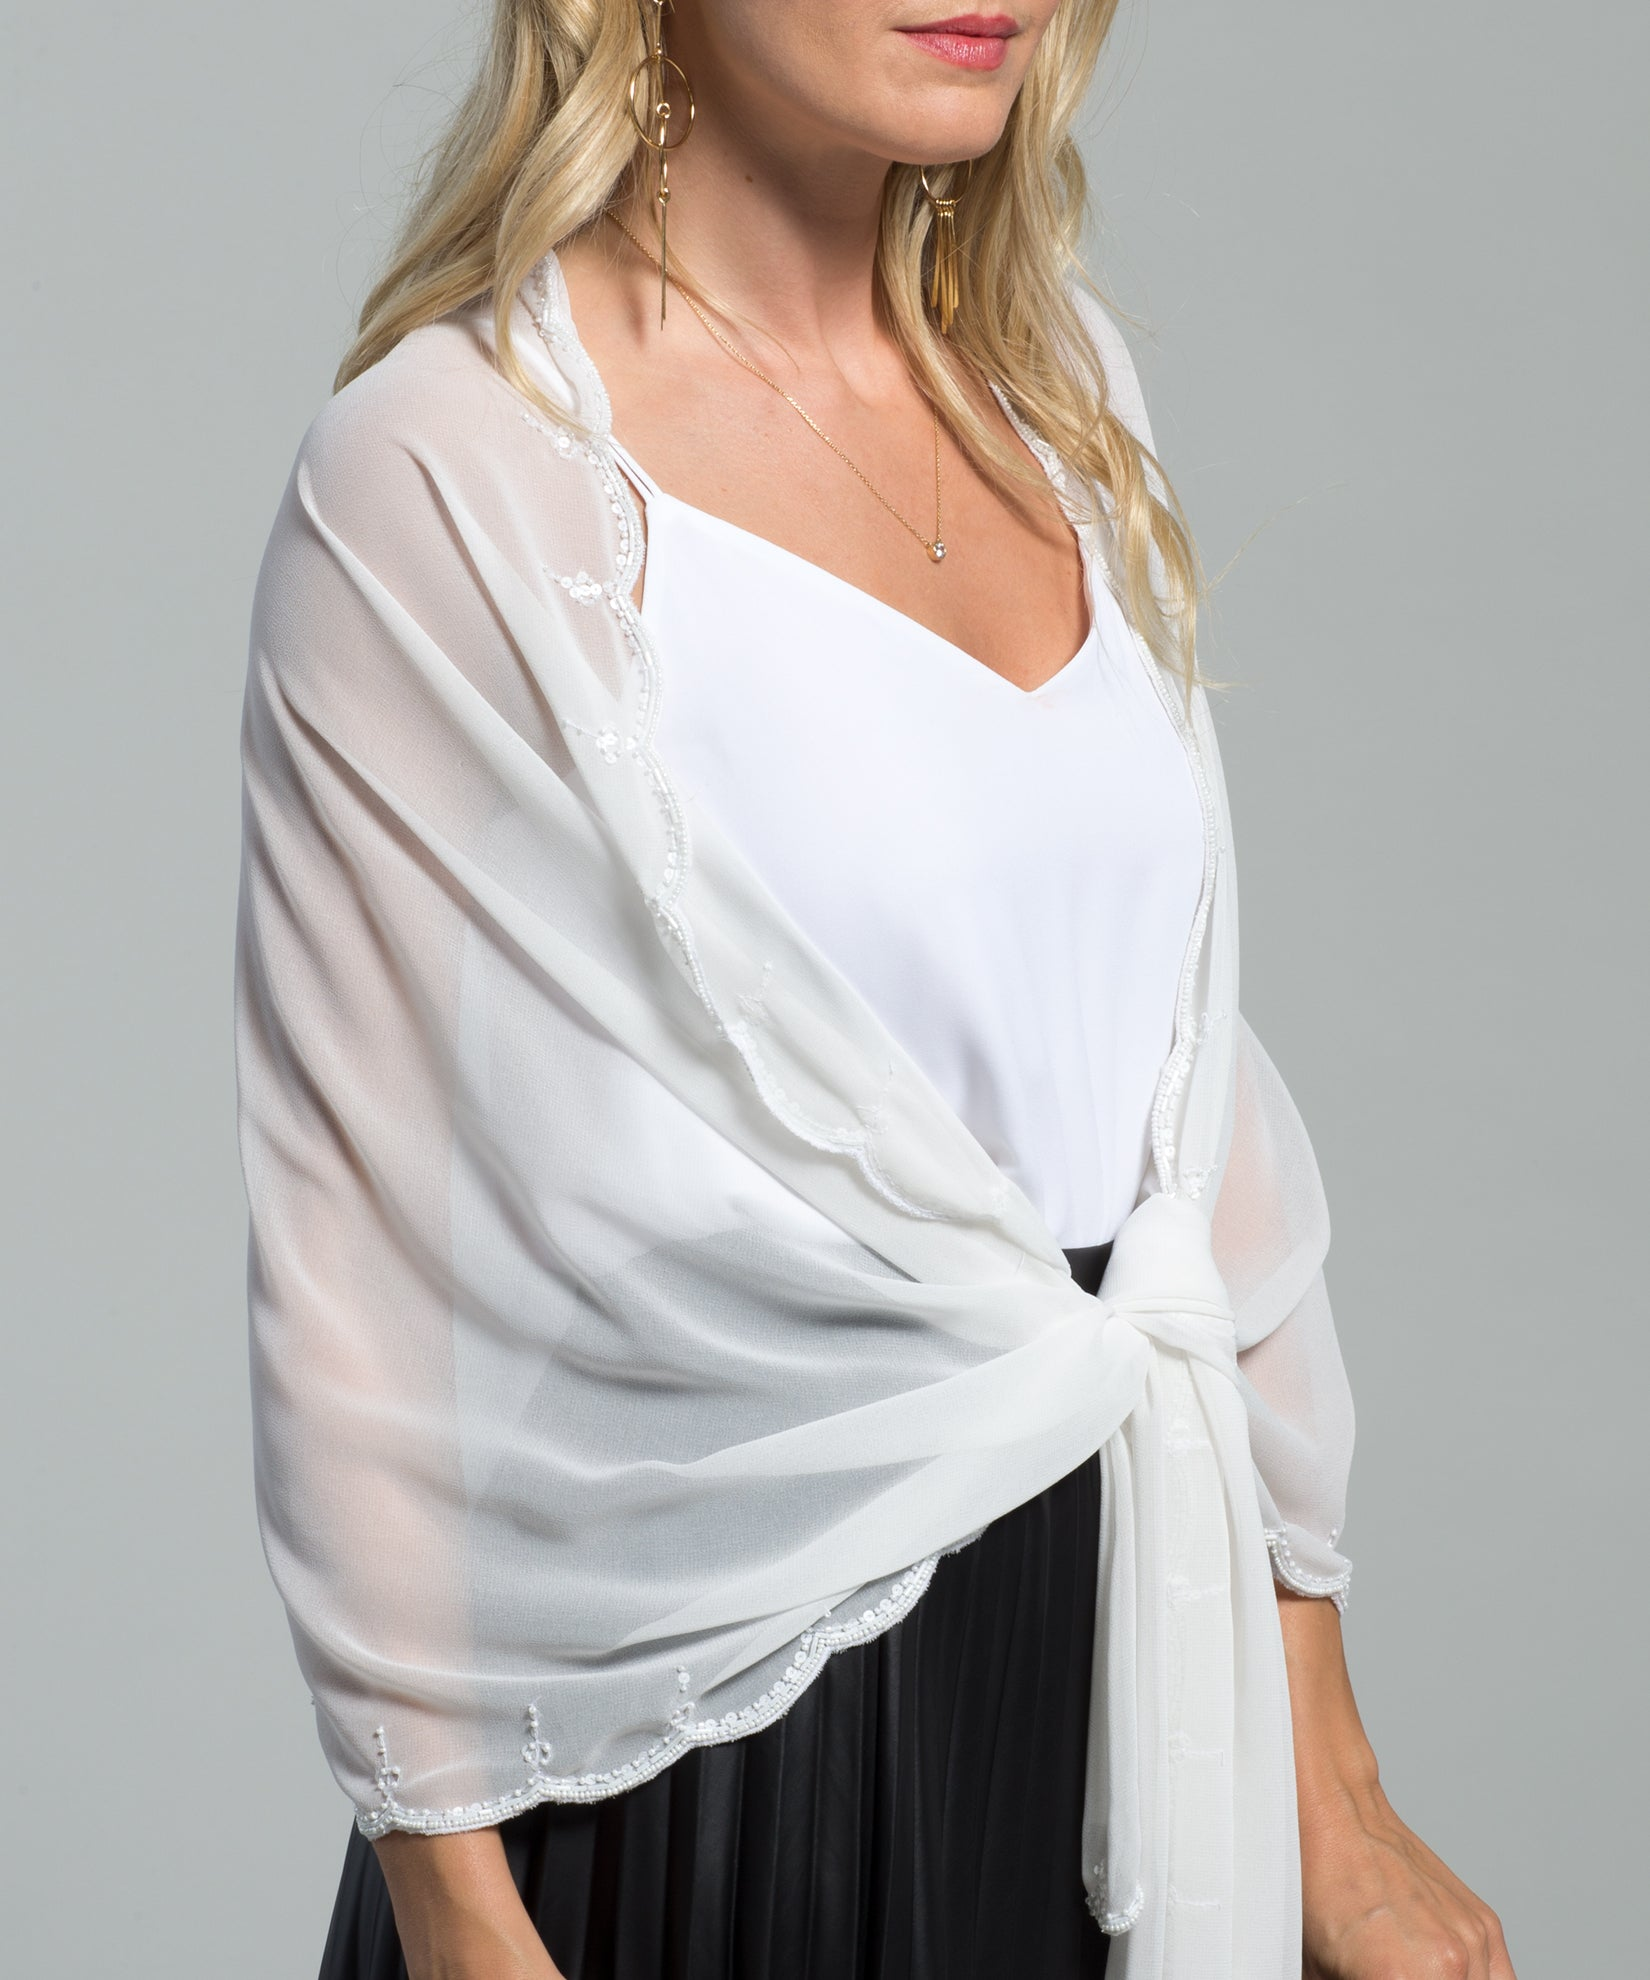 Ivory - Scallop Edge Embellished Wrap